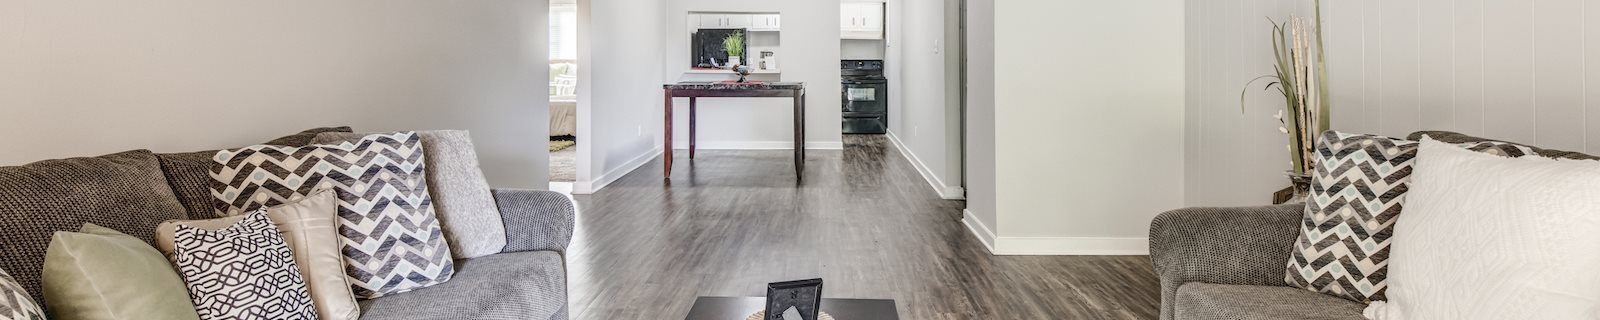 plank-style floored living room with model furnishings at Reserve at Midtown Apartments, Tallahassee, FL